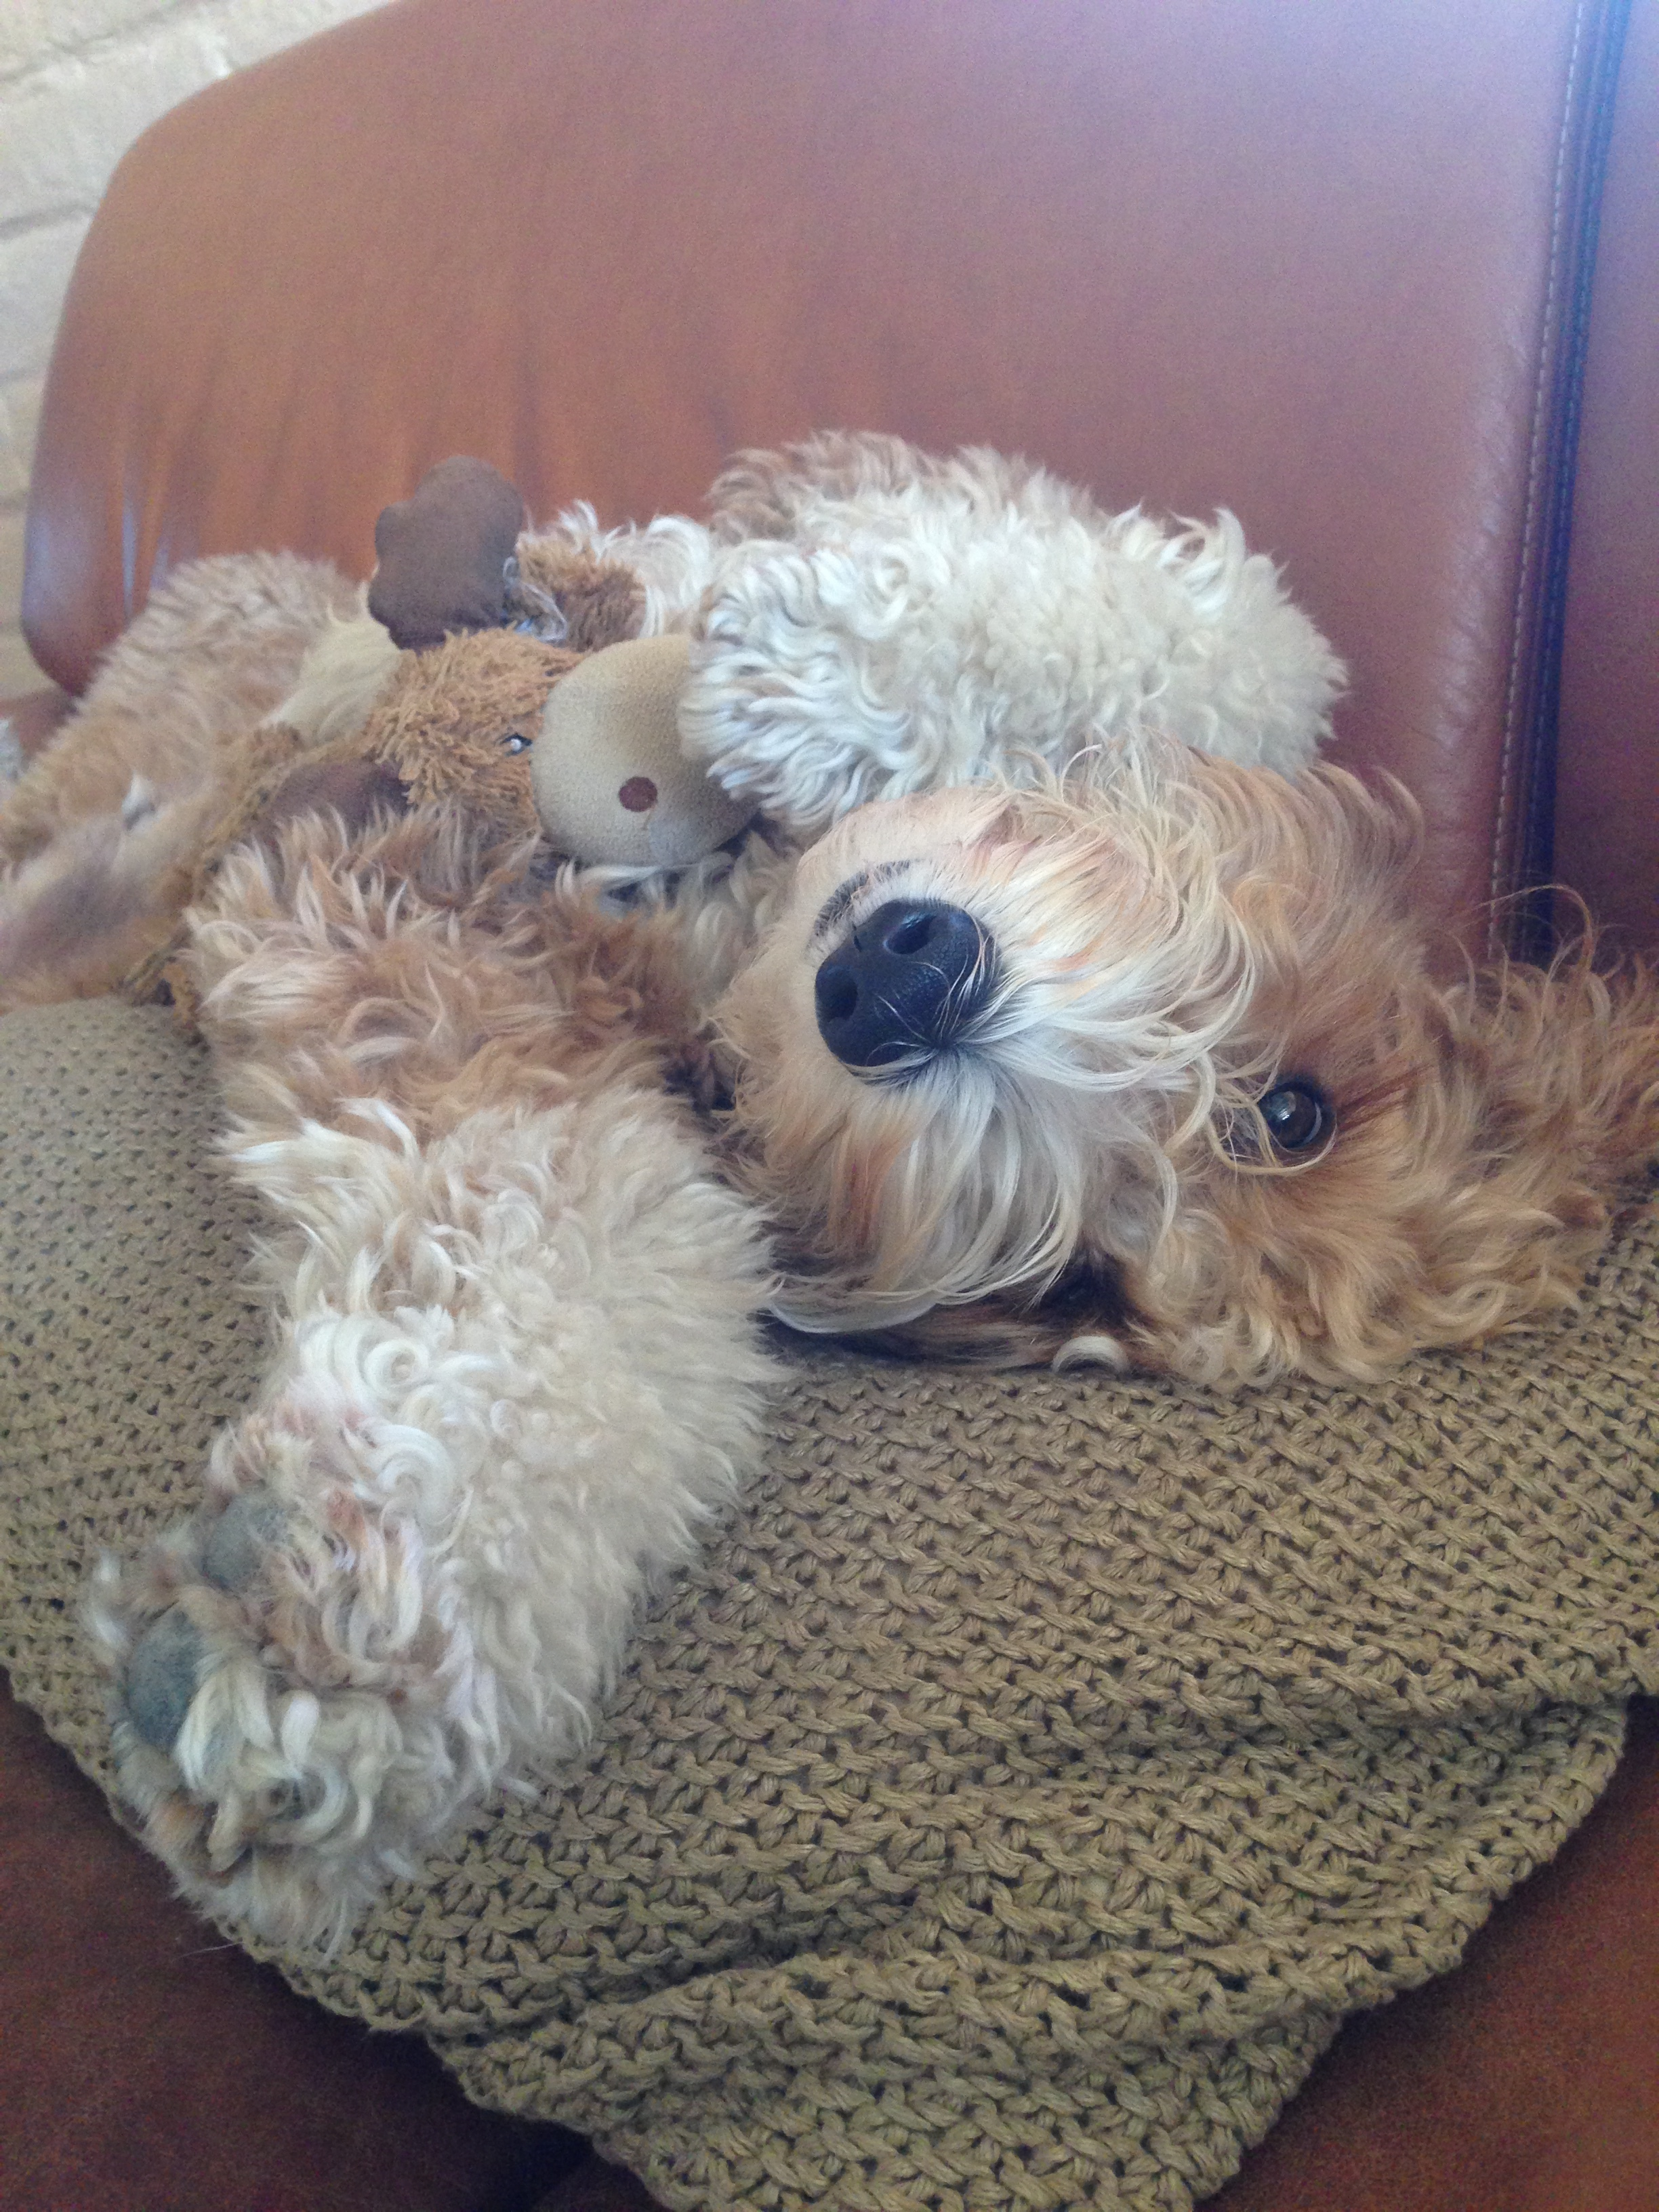 Bernie McSquare enjoys relaxing on the couch with his favorite plush toy Marvin Moose.